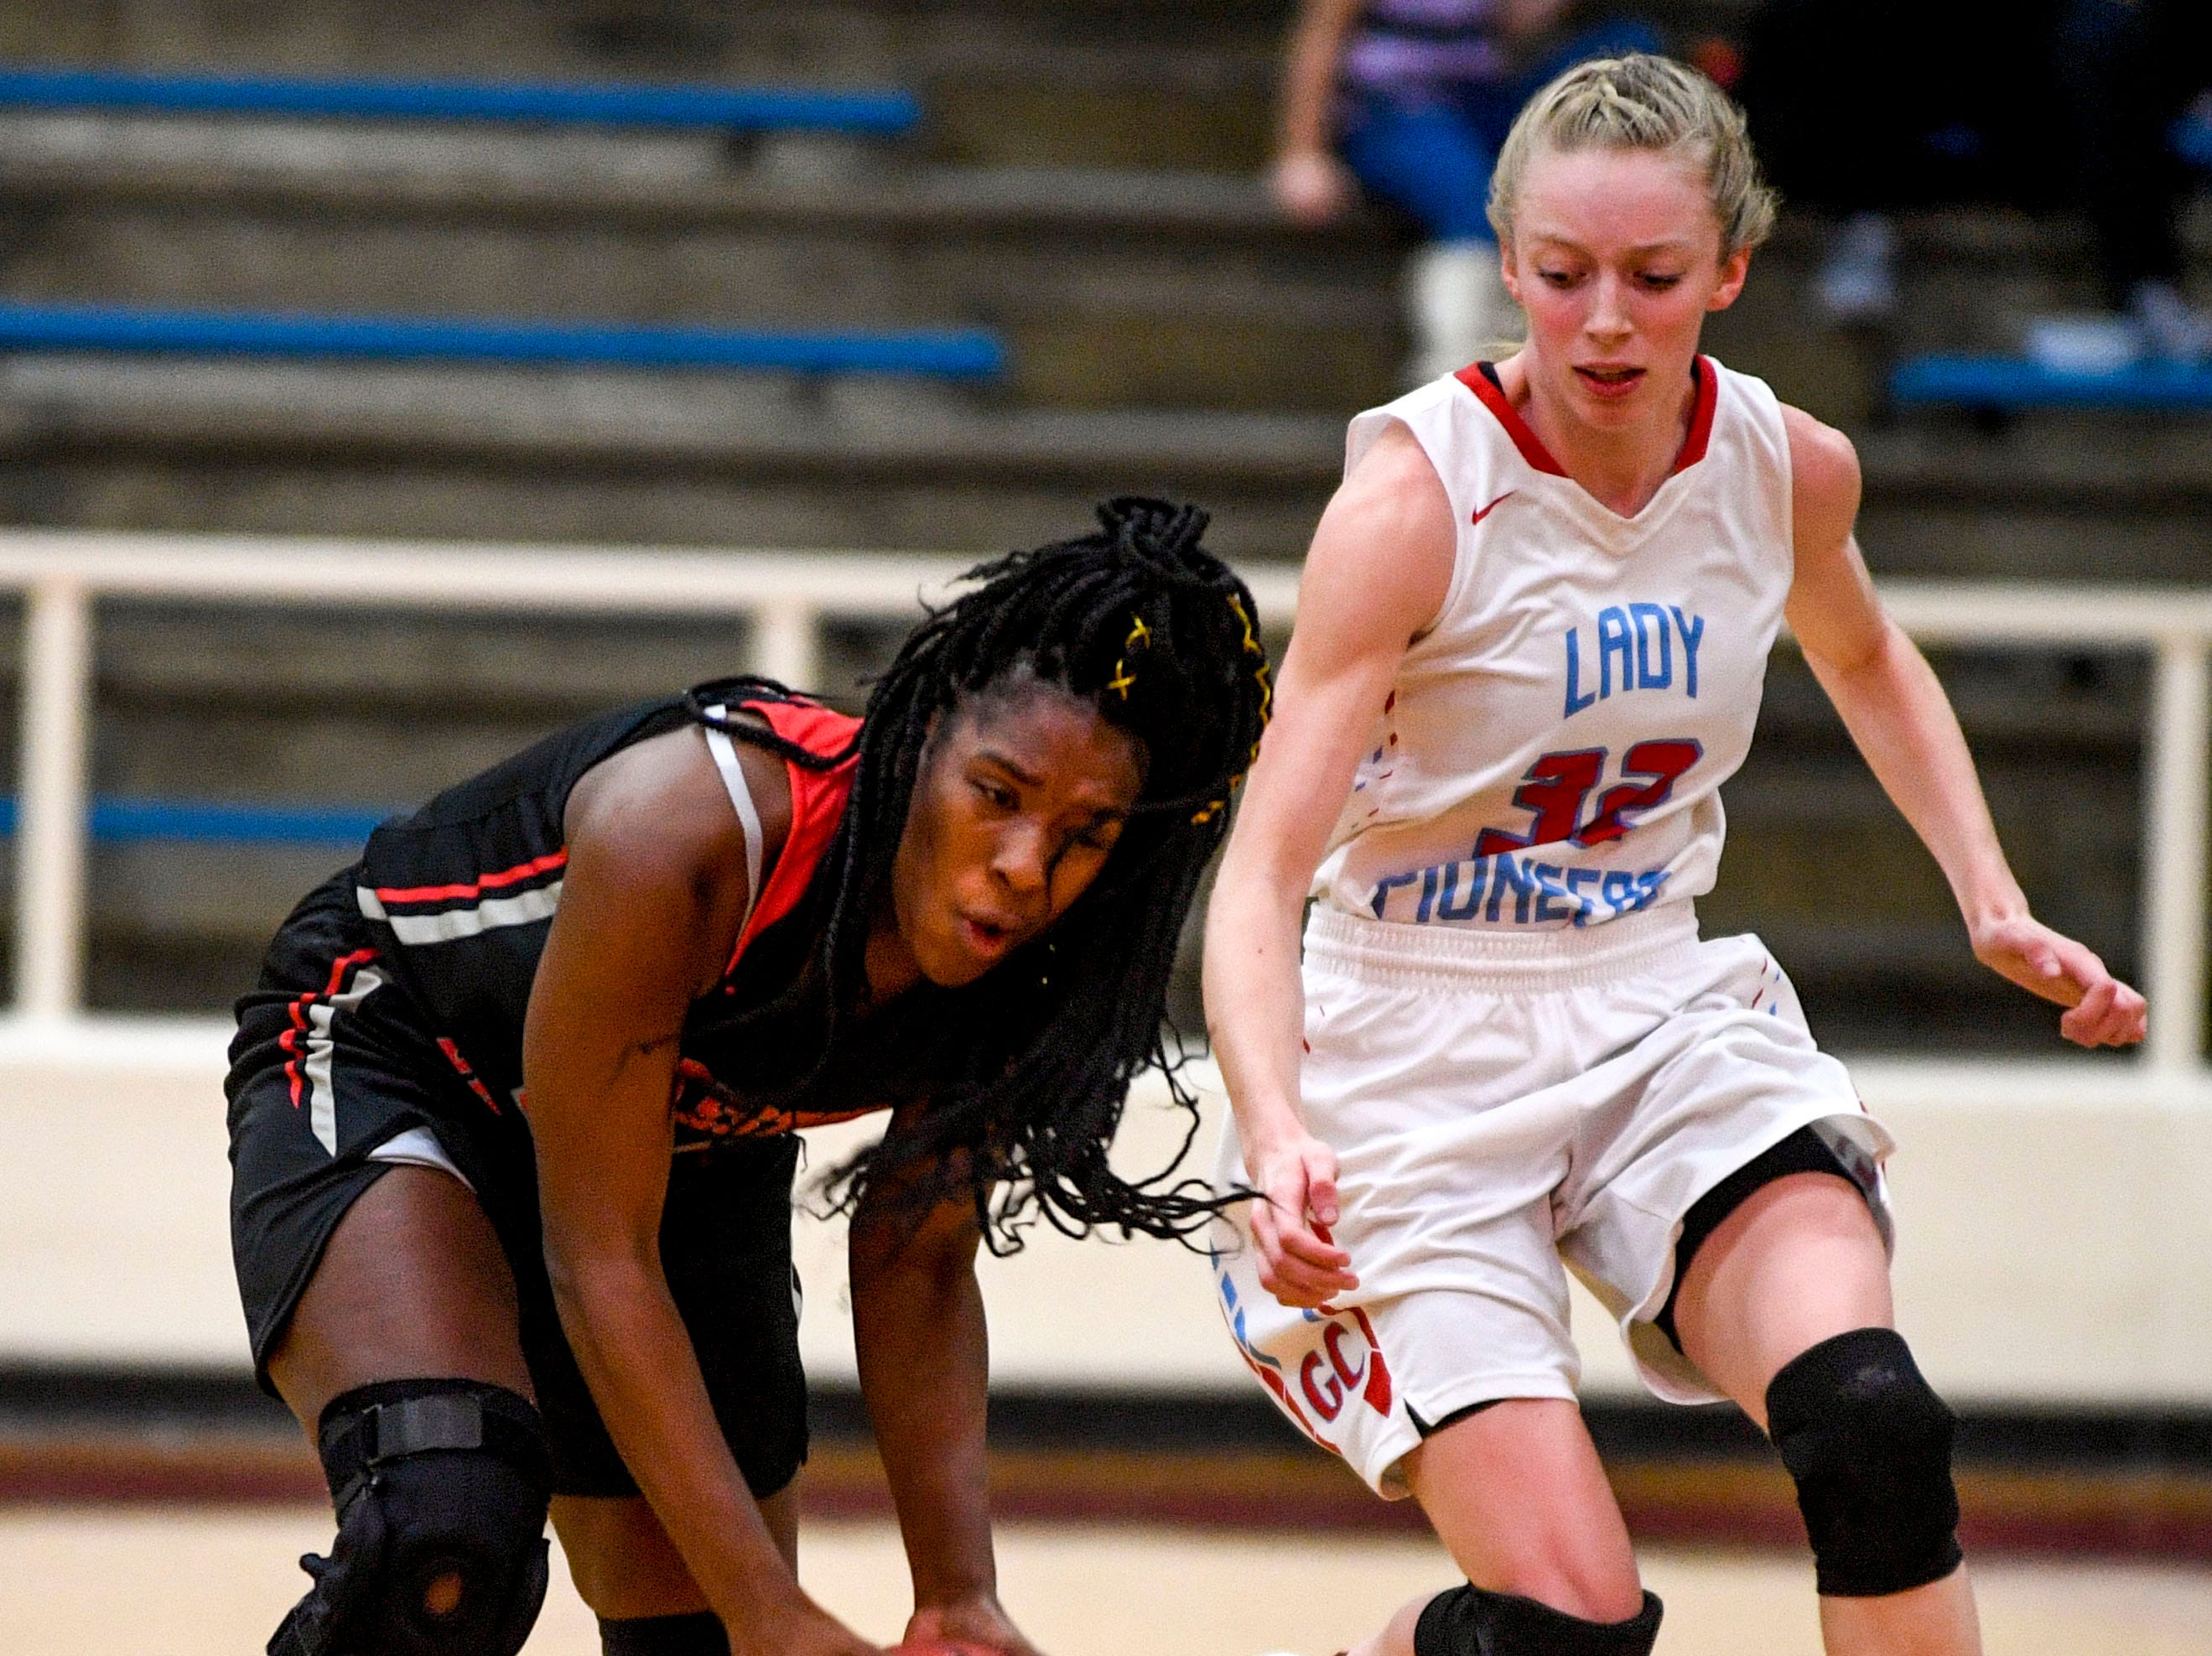 Sikeston's Taydrianna Barnett (20) tries to recover a lost ball before Gibson County's KJ White (32) can grab it in a TSSAA girls basketball game between Gibson County and Sikeston (MO) in the Gibson County Christmas Tournament at Gibson County High School in Dyer, Tenn., on Thursday, Dec. 20, 2018.